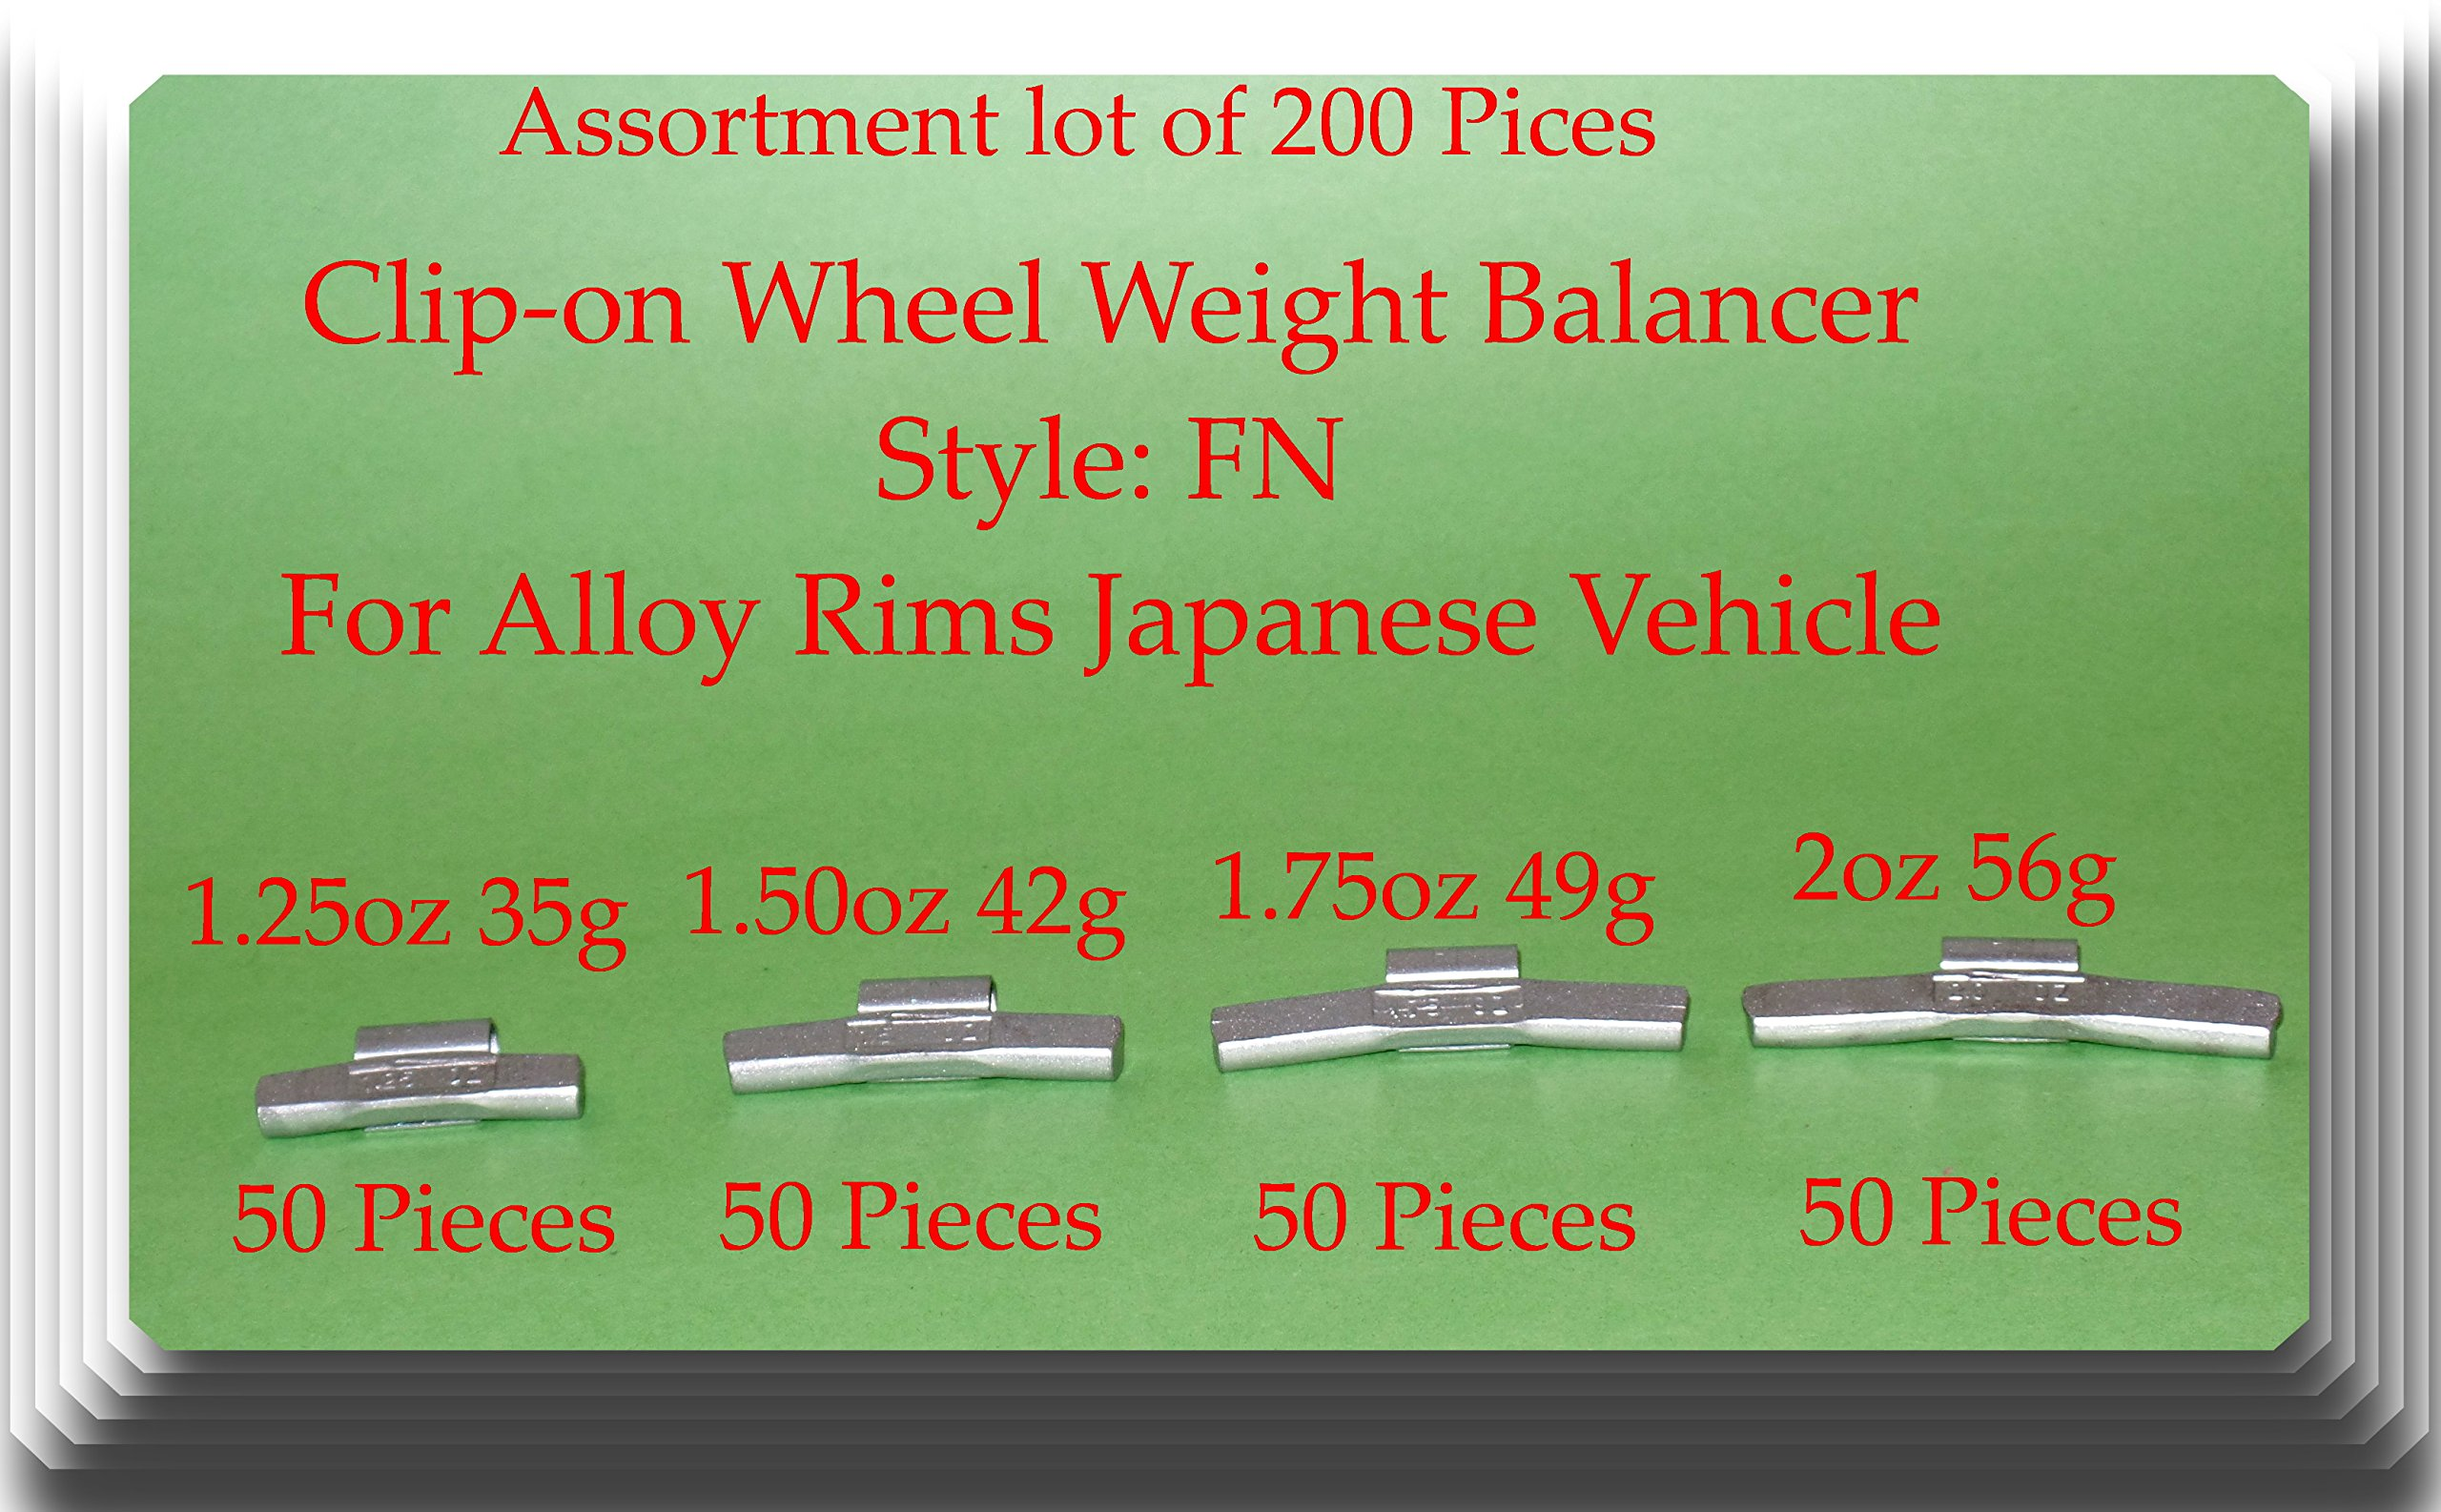 VPro (200 assorted Pieces) Wheel Weight Balancer(50 x 1.25) (50 x oz 1.50 oz) (50 x 1.75 oz)(50 x 2 oz) Style FN for Alloy Rims of Japanese Vehicles